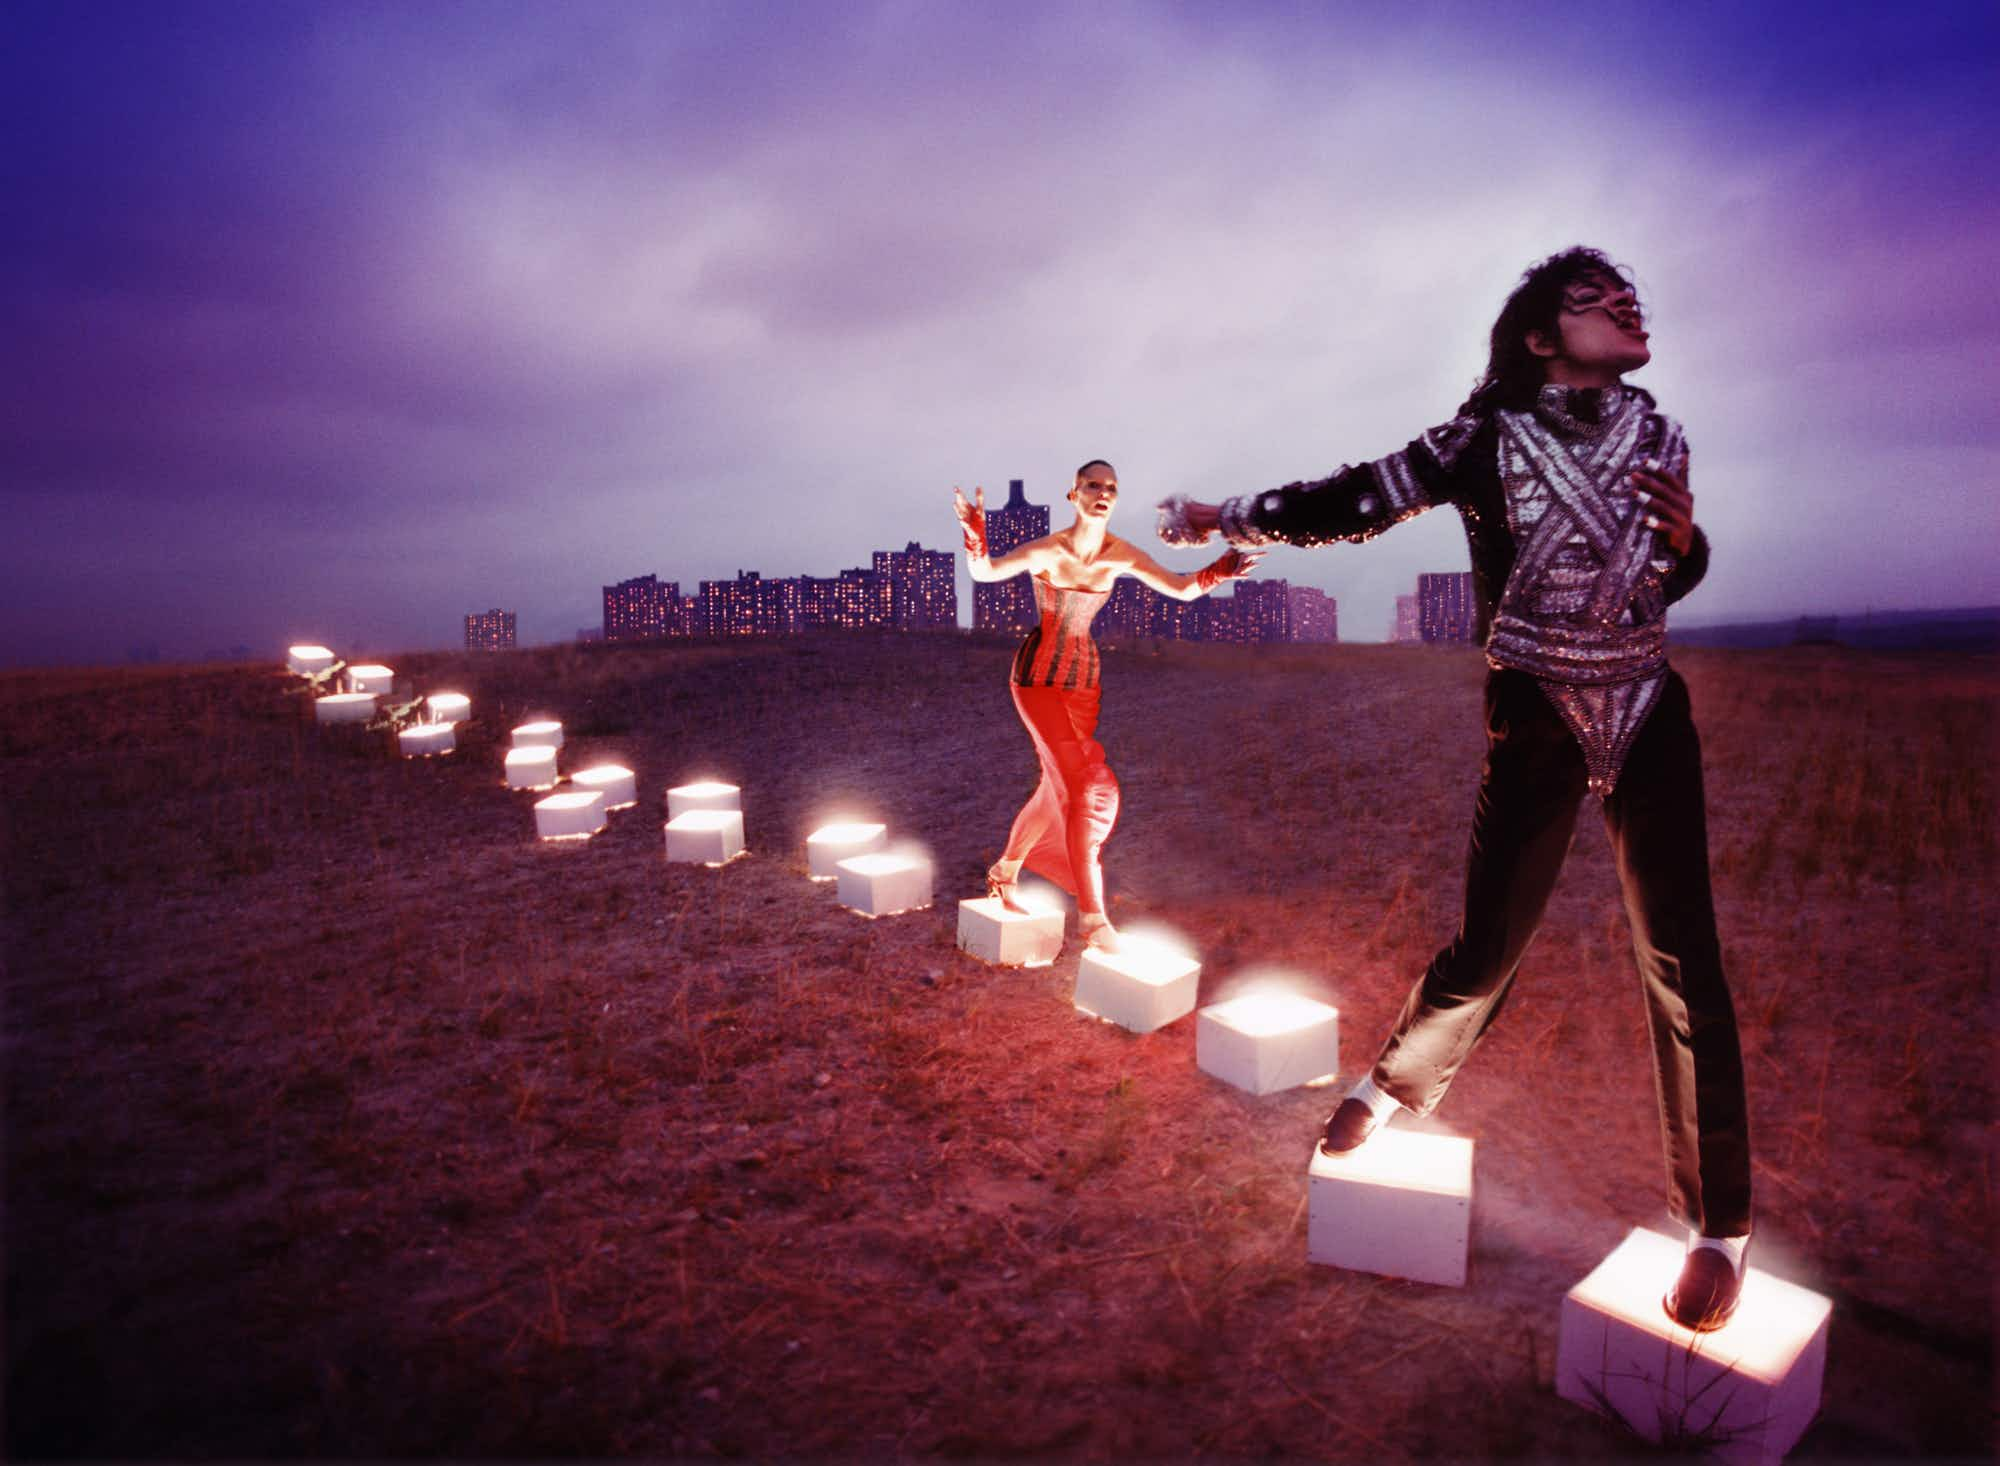 Michael Jackson exhibition coming to London's National Portrait Gallery to mark his 60th birthday